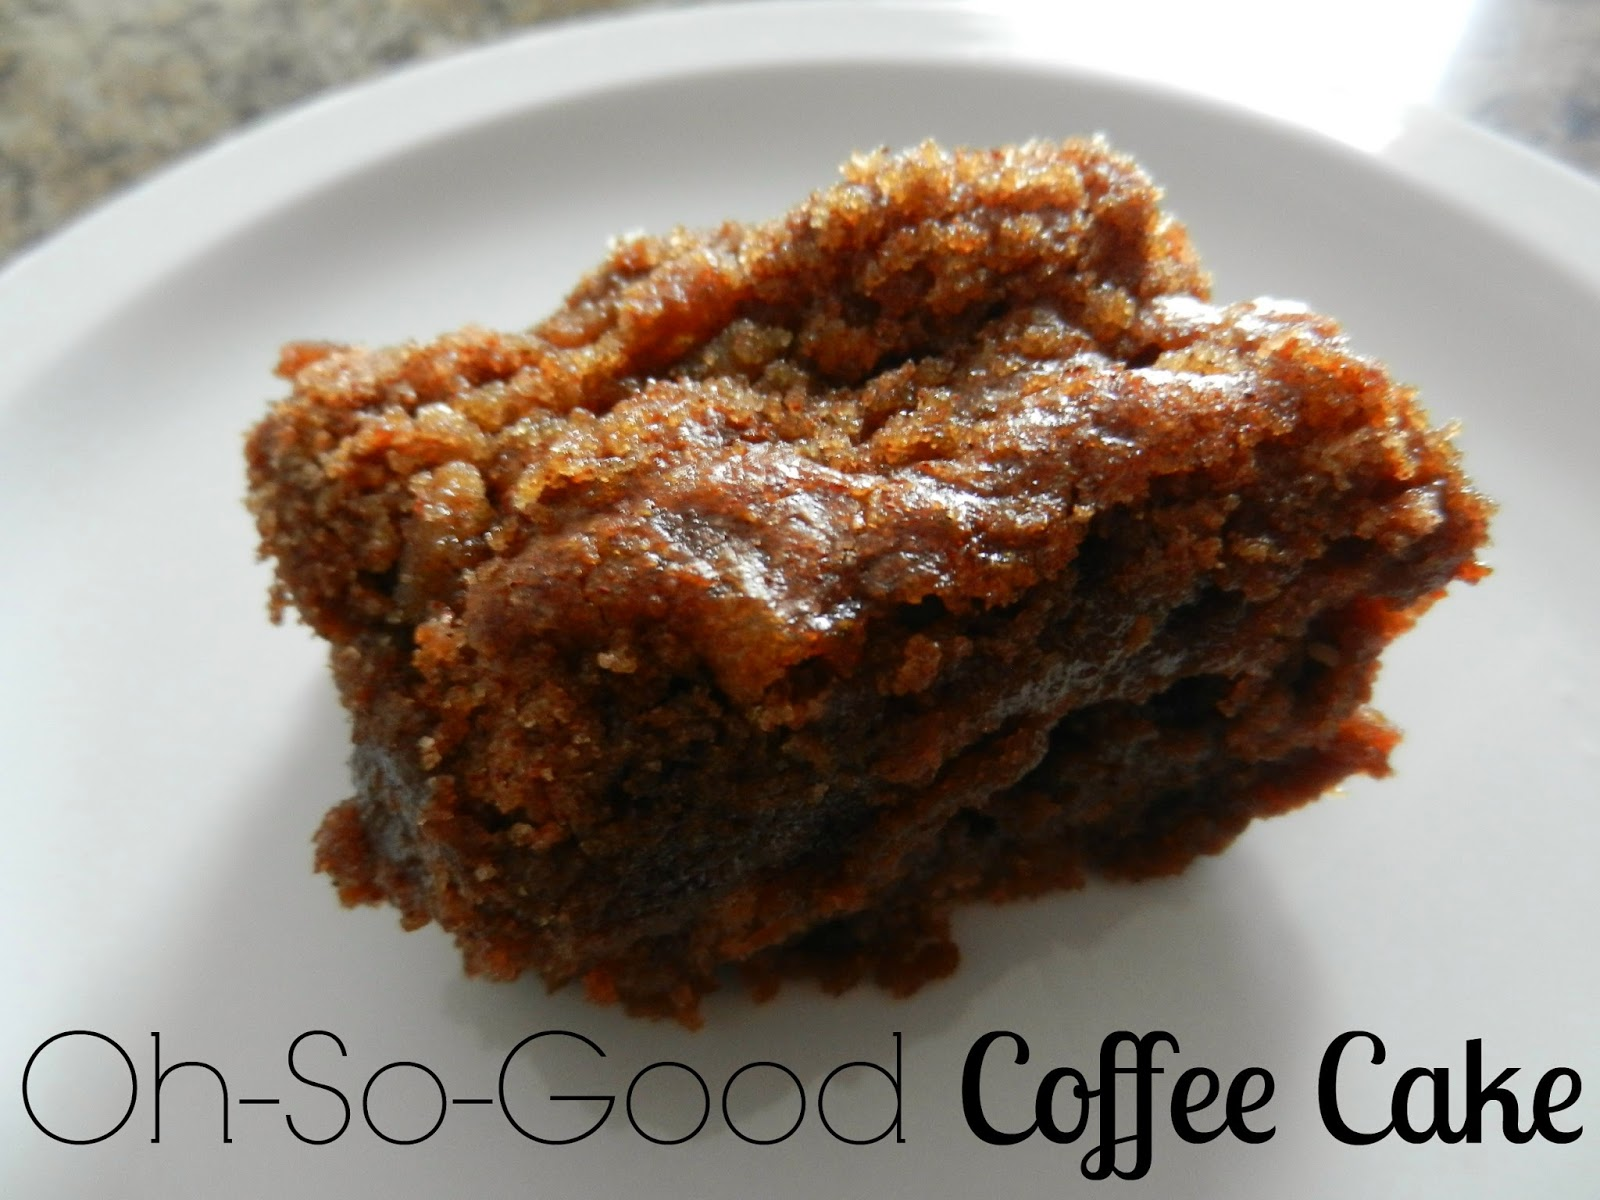 Oh-So-Good Coffee Cake